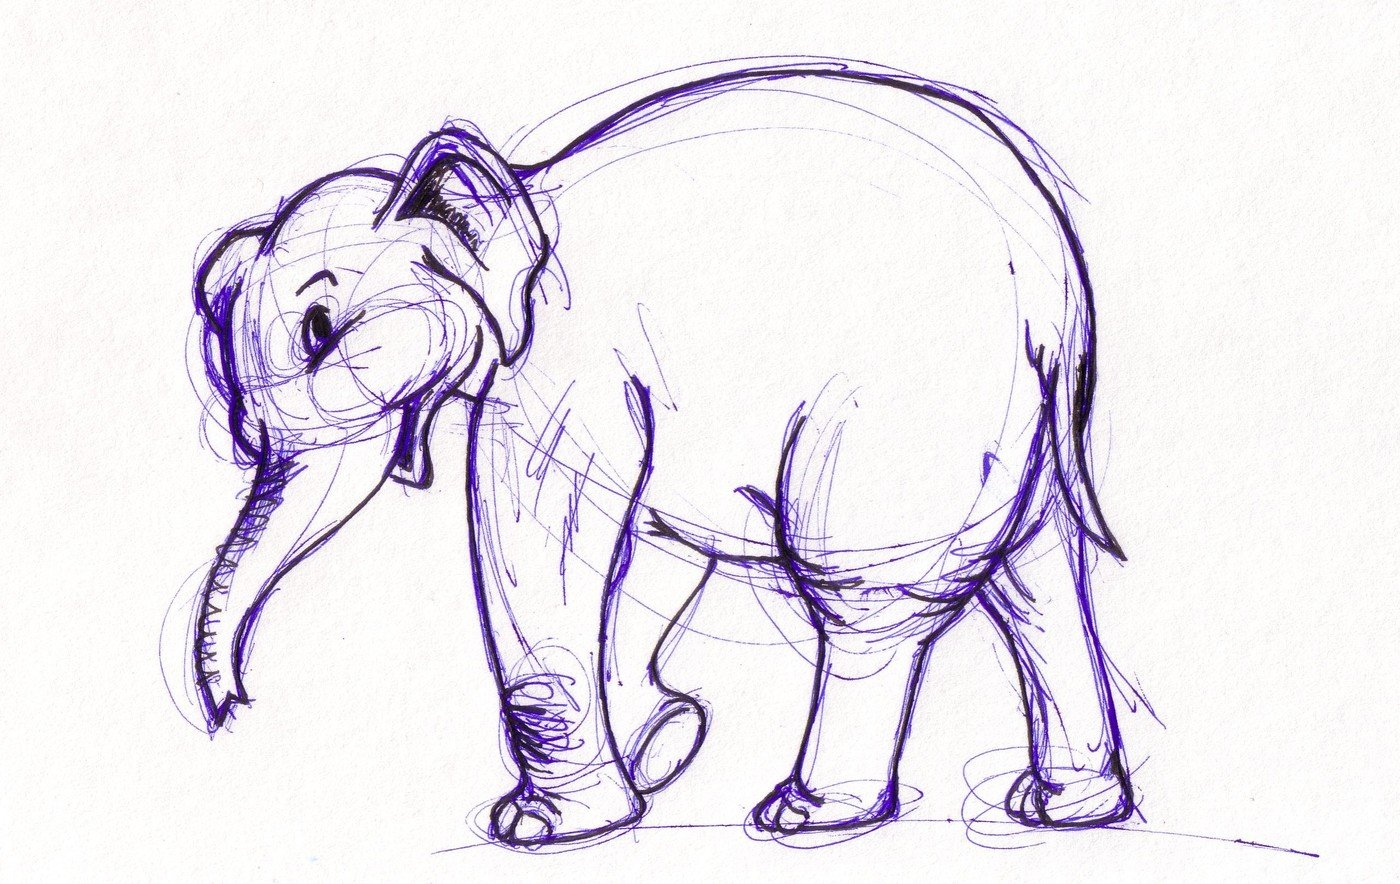 Various sketches smiling elephant characters based on other works and one of my own creations